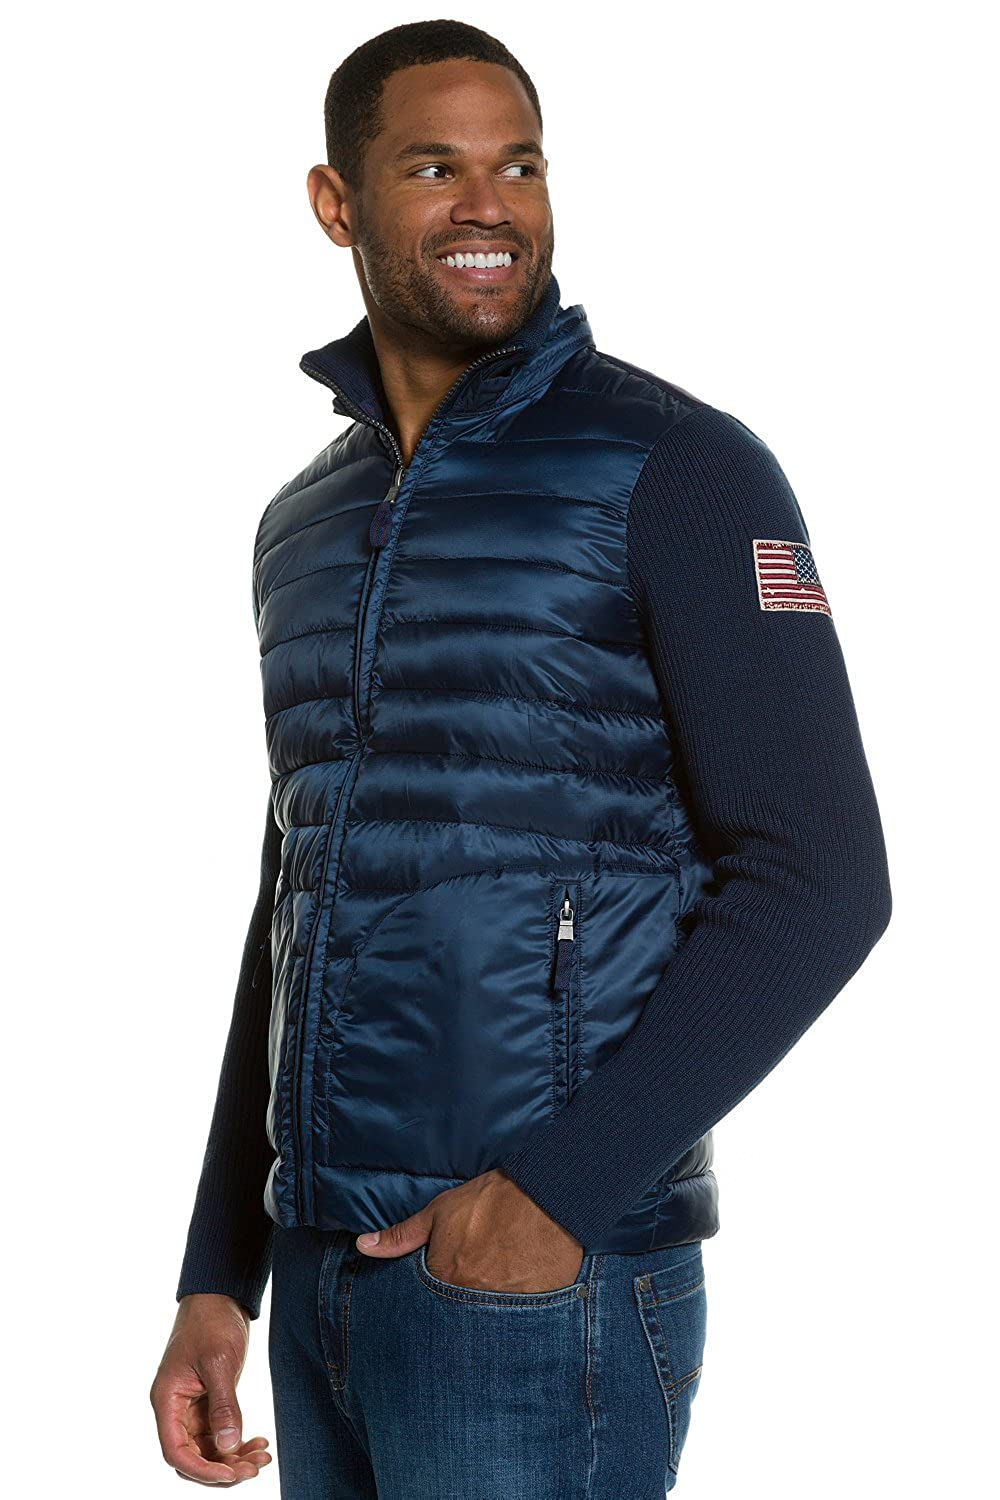 JP1880 Men's Big & Tall Quilted Jacket Navy X-Large 704303 70-XL